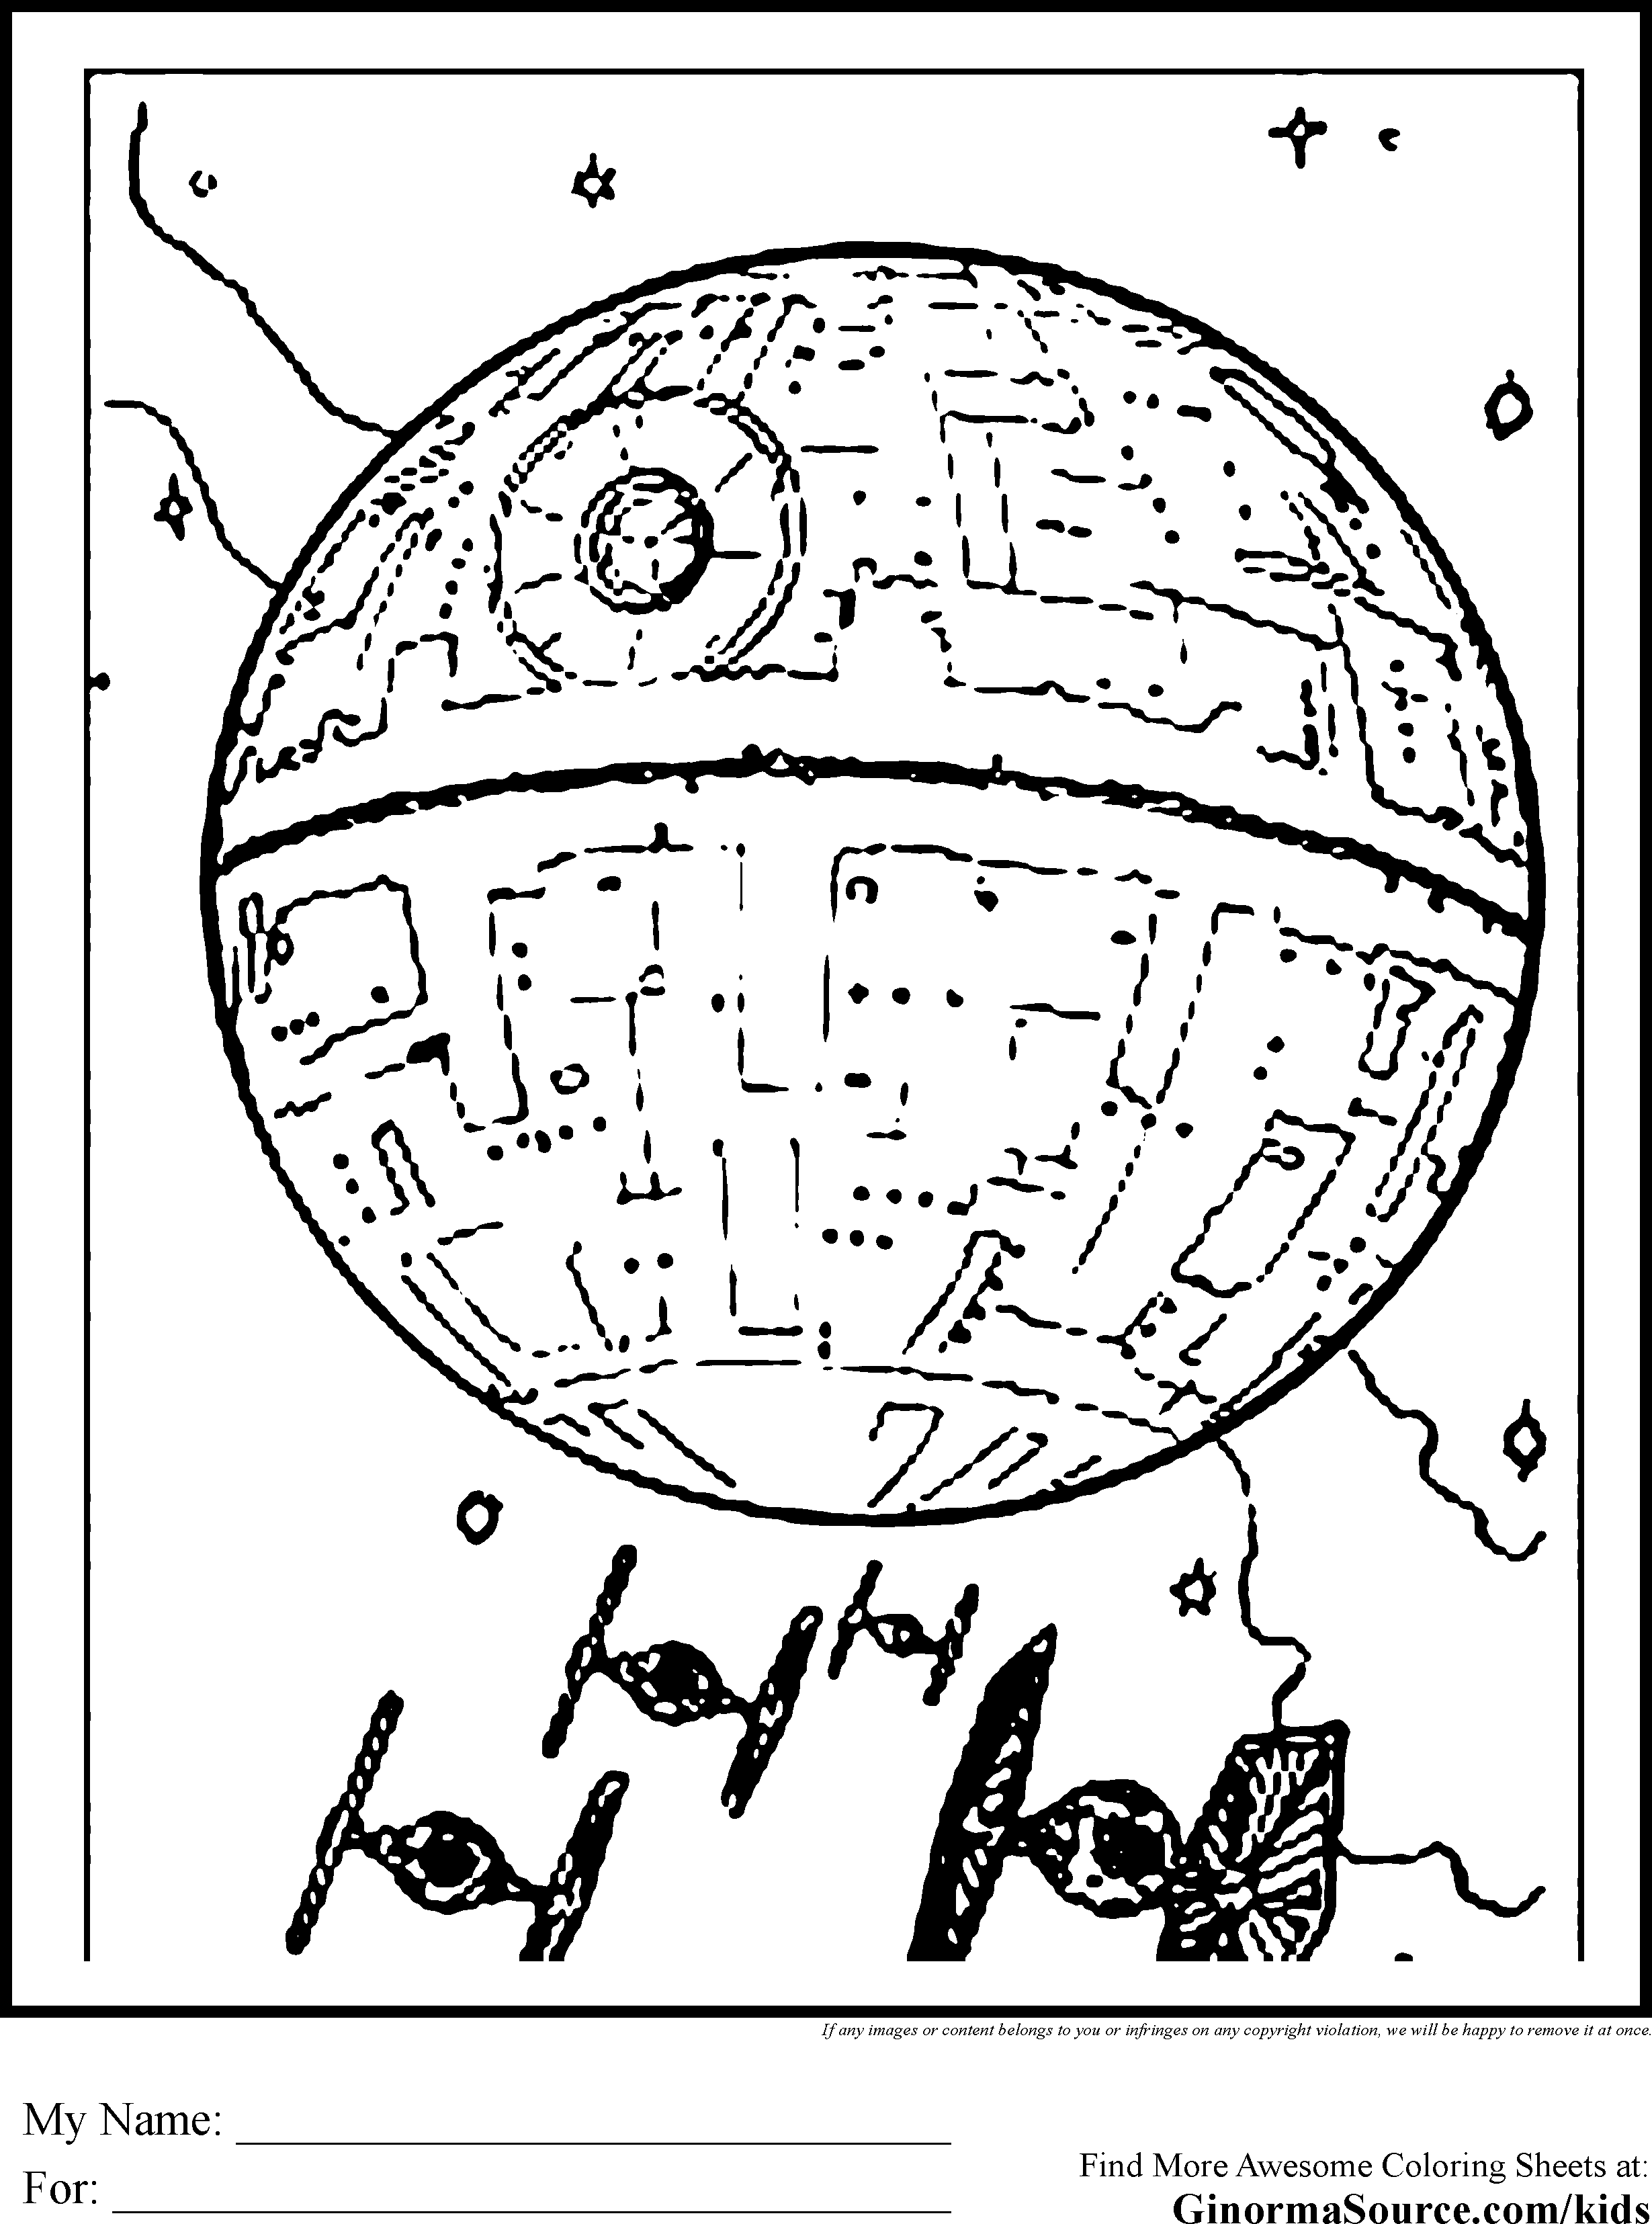 Death star coloring pages